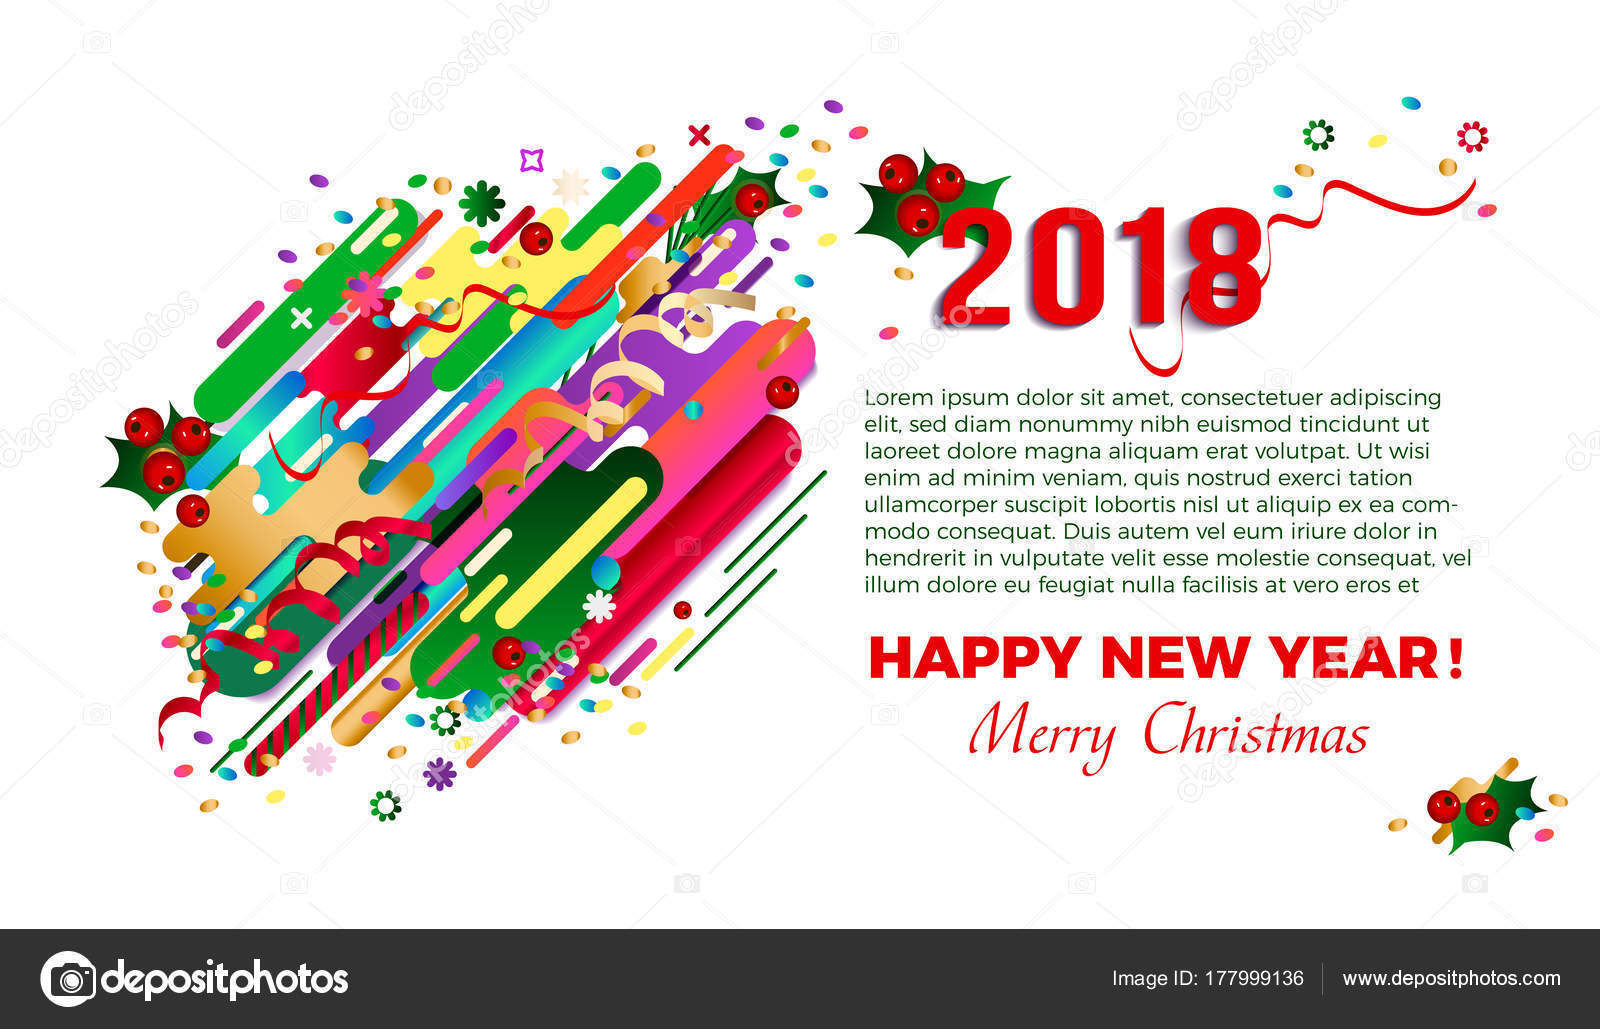 2018 Happy New Year Greeting Card Card Design Poster Original